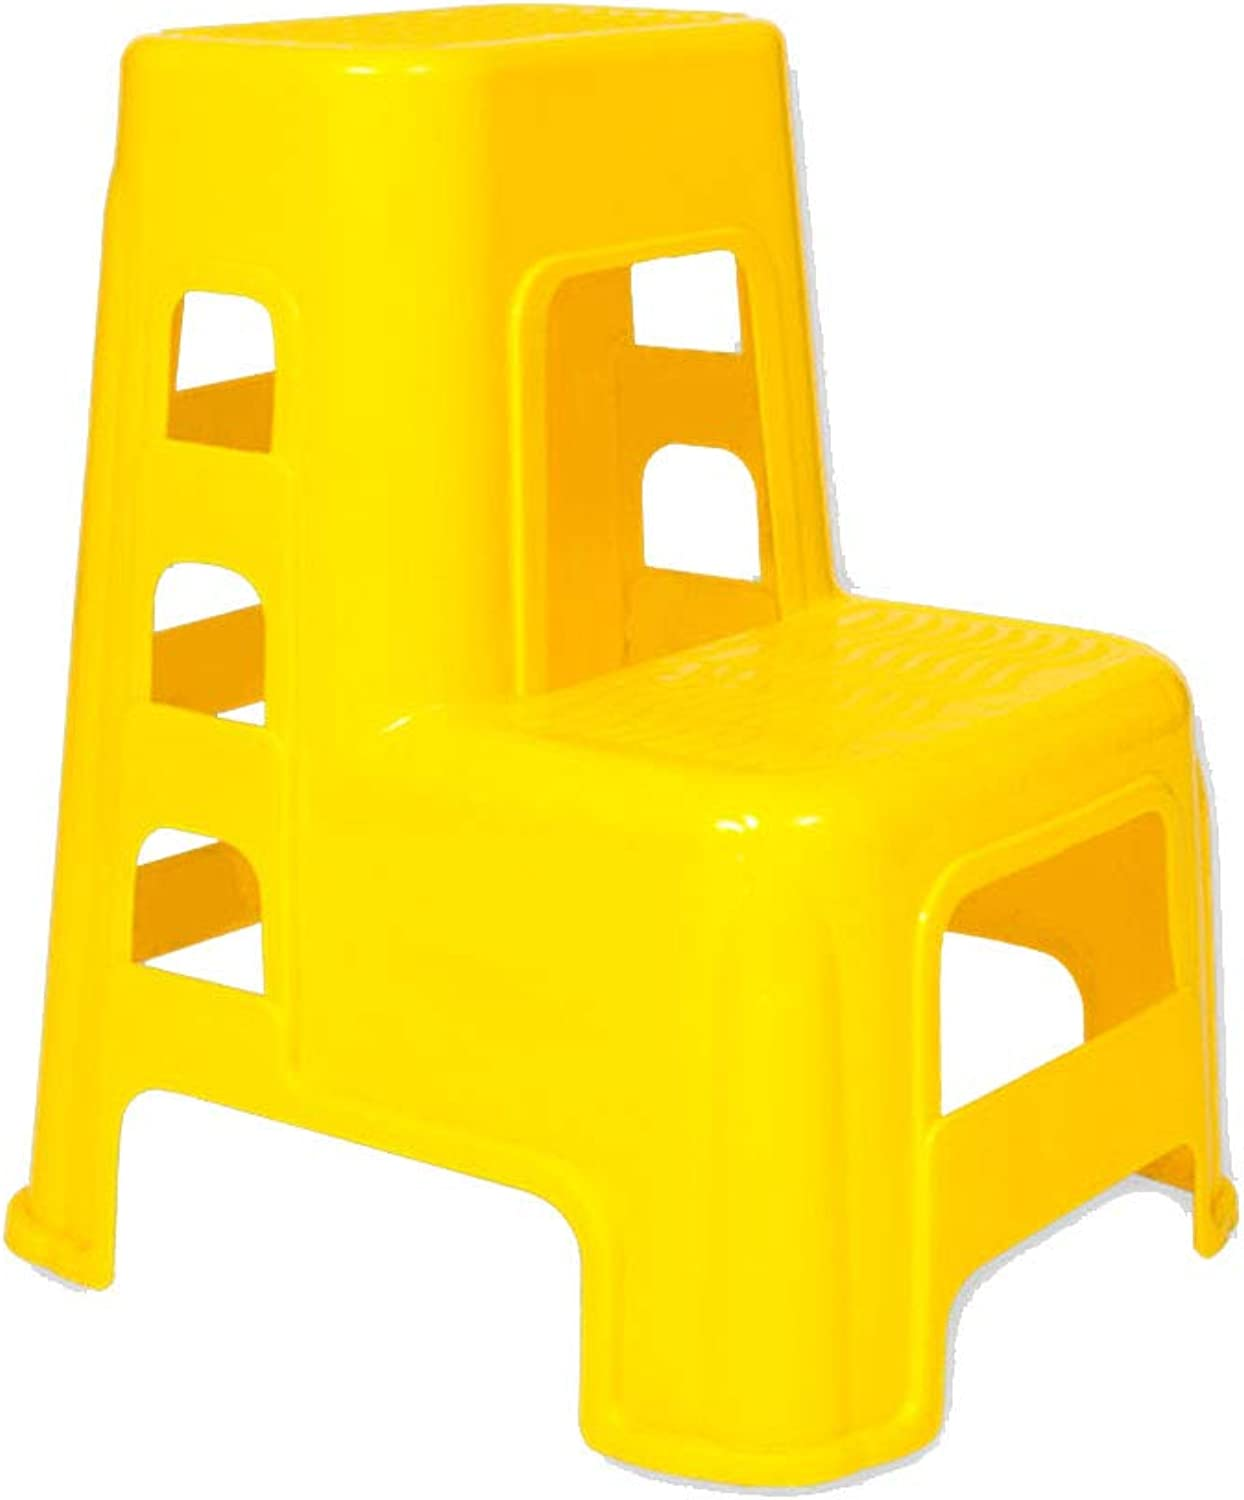 2 Step Ladder Stool Plastic Non-Slip Wash Car Stool for Home Office